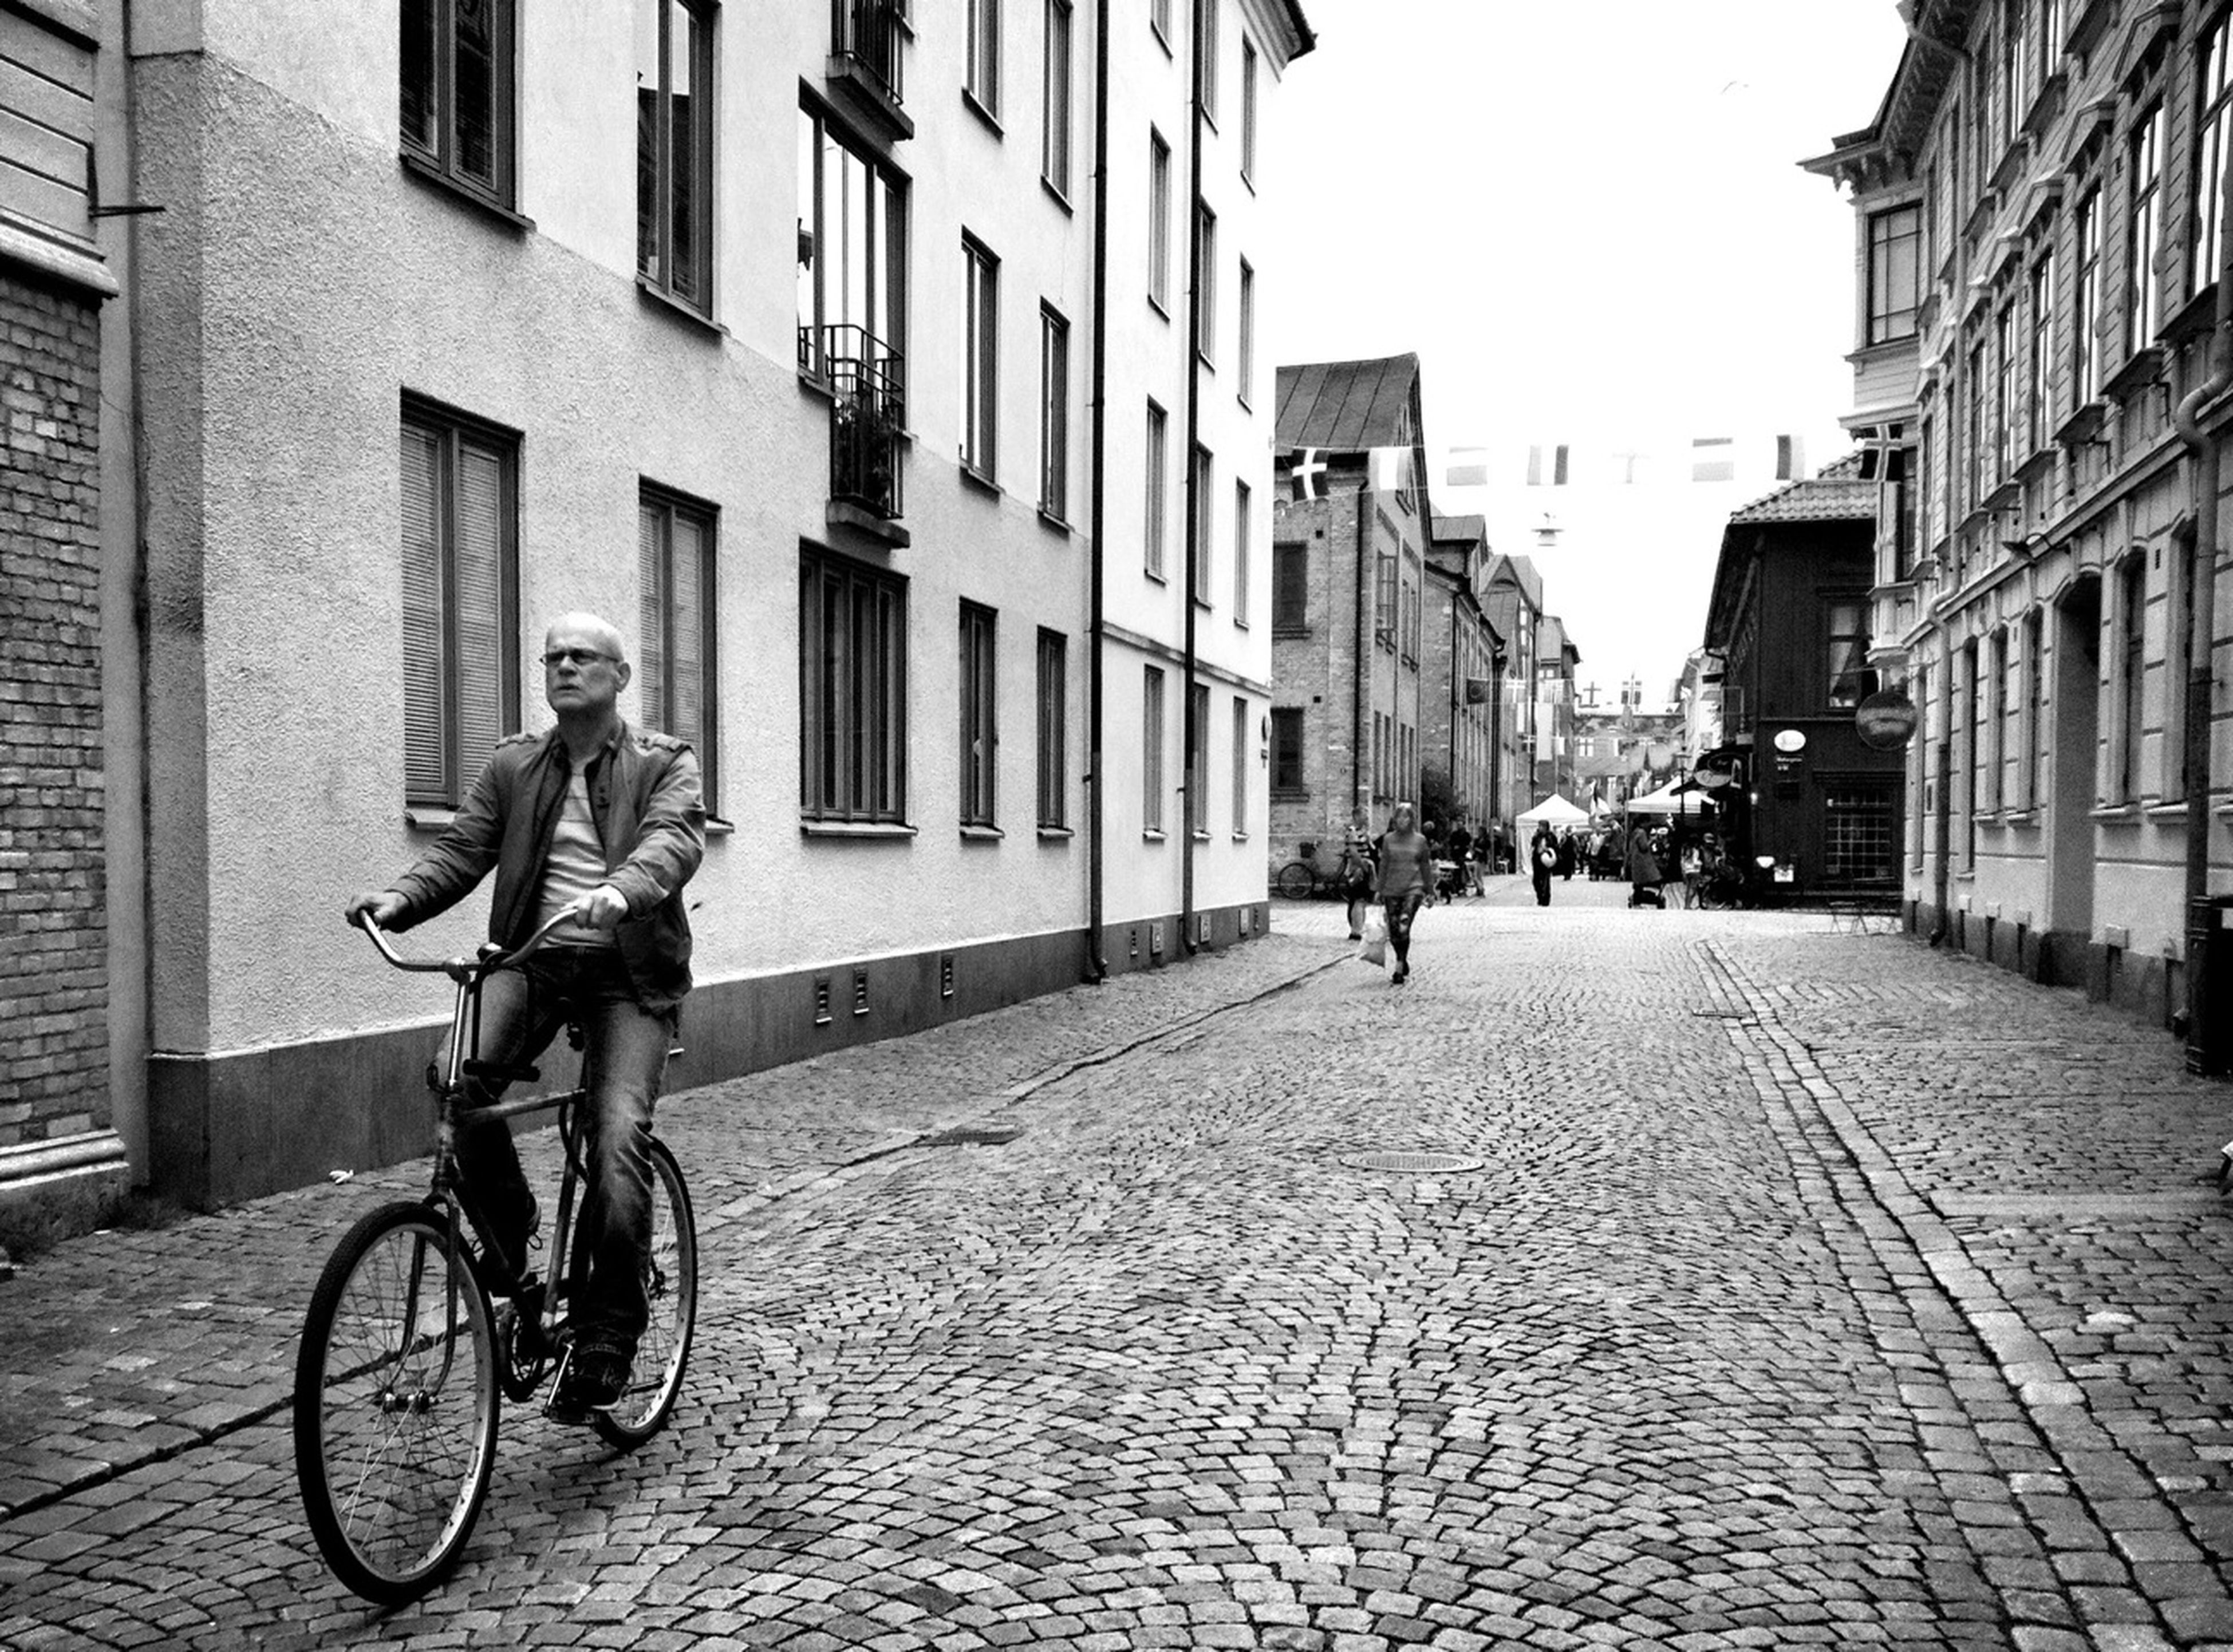 bicycle, building exterior, architecture, built structure, full length, transportation, lifestyles, mode of transport, street, riding, city, men, land vehicle, leisure activity, walking, cobblestone, casual clothing, city life